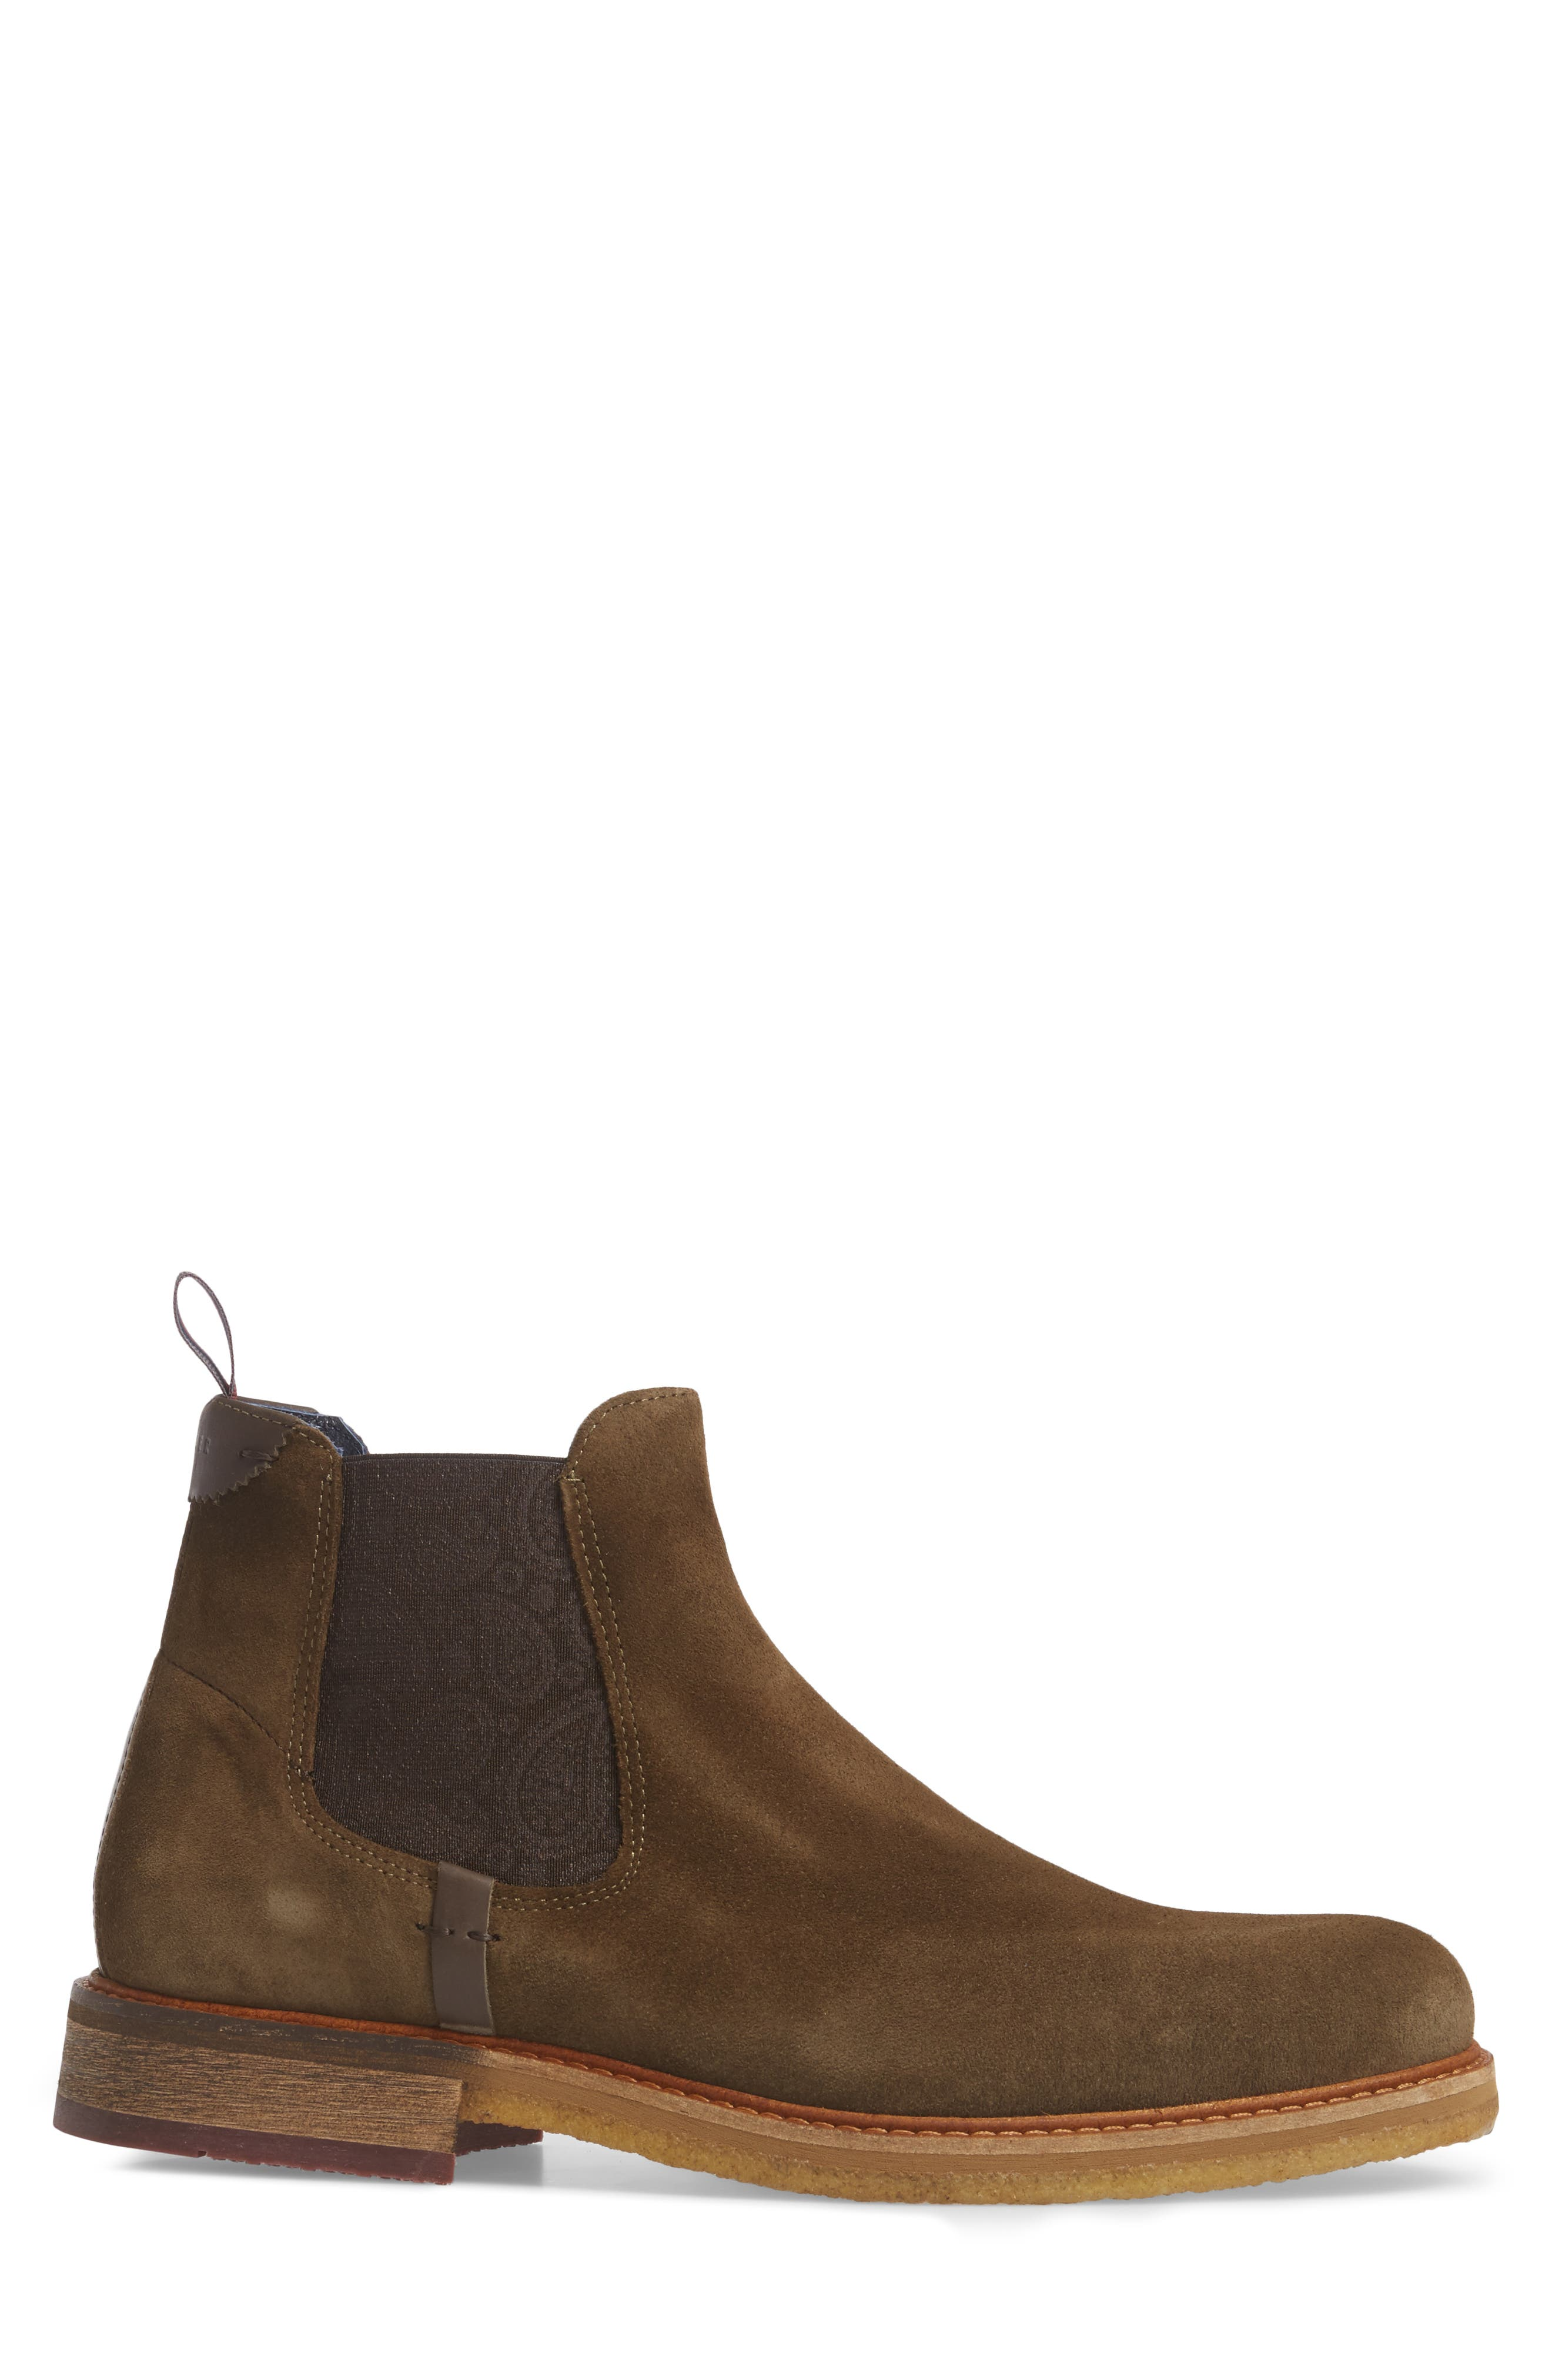 Bronzo Chelsea Boot,                             Alternate thumbnail 3, color,                             Dark Green Suede